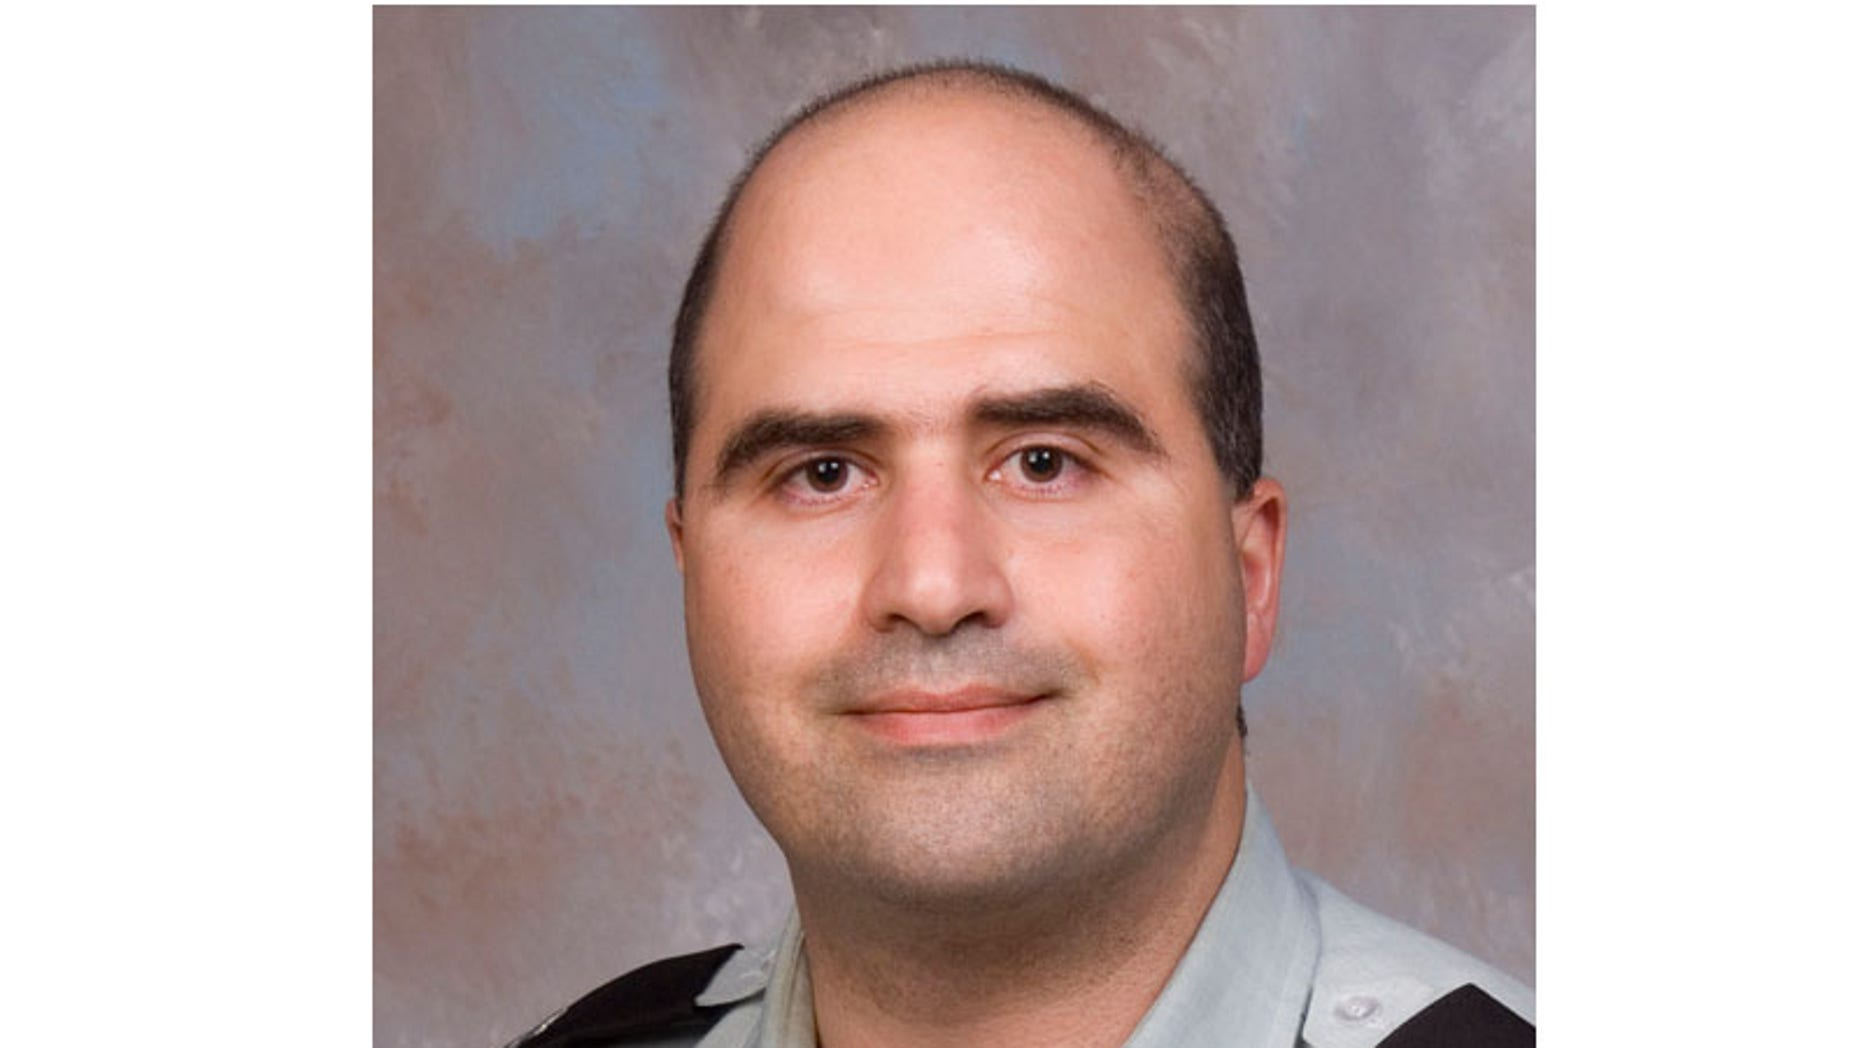 2007 File: Nidal Malik Hasan when he undertook the Disaster and Military Psychiatry Fellowship program. Hasan is charged in the fatal 2009 shooting rampage at Fort Hood.